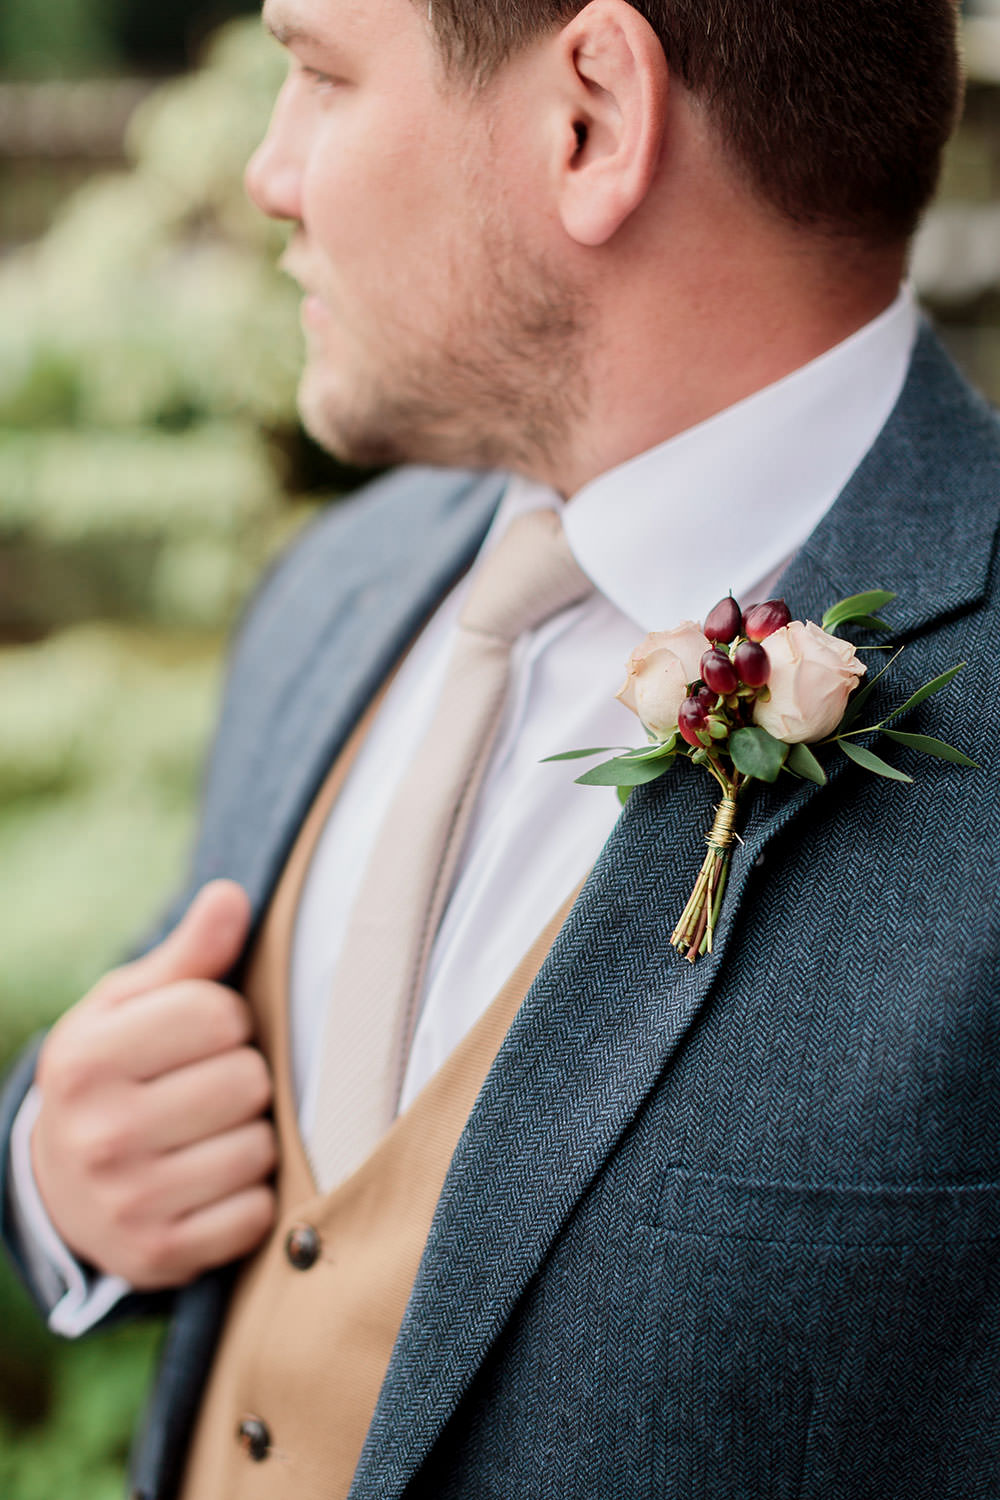 Groom Buttonhole Flowers Rose Berry Greenery Red Blush Marsala Gold Wedding Carn Patrick Photography